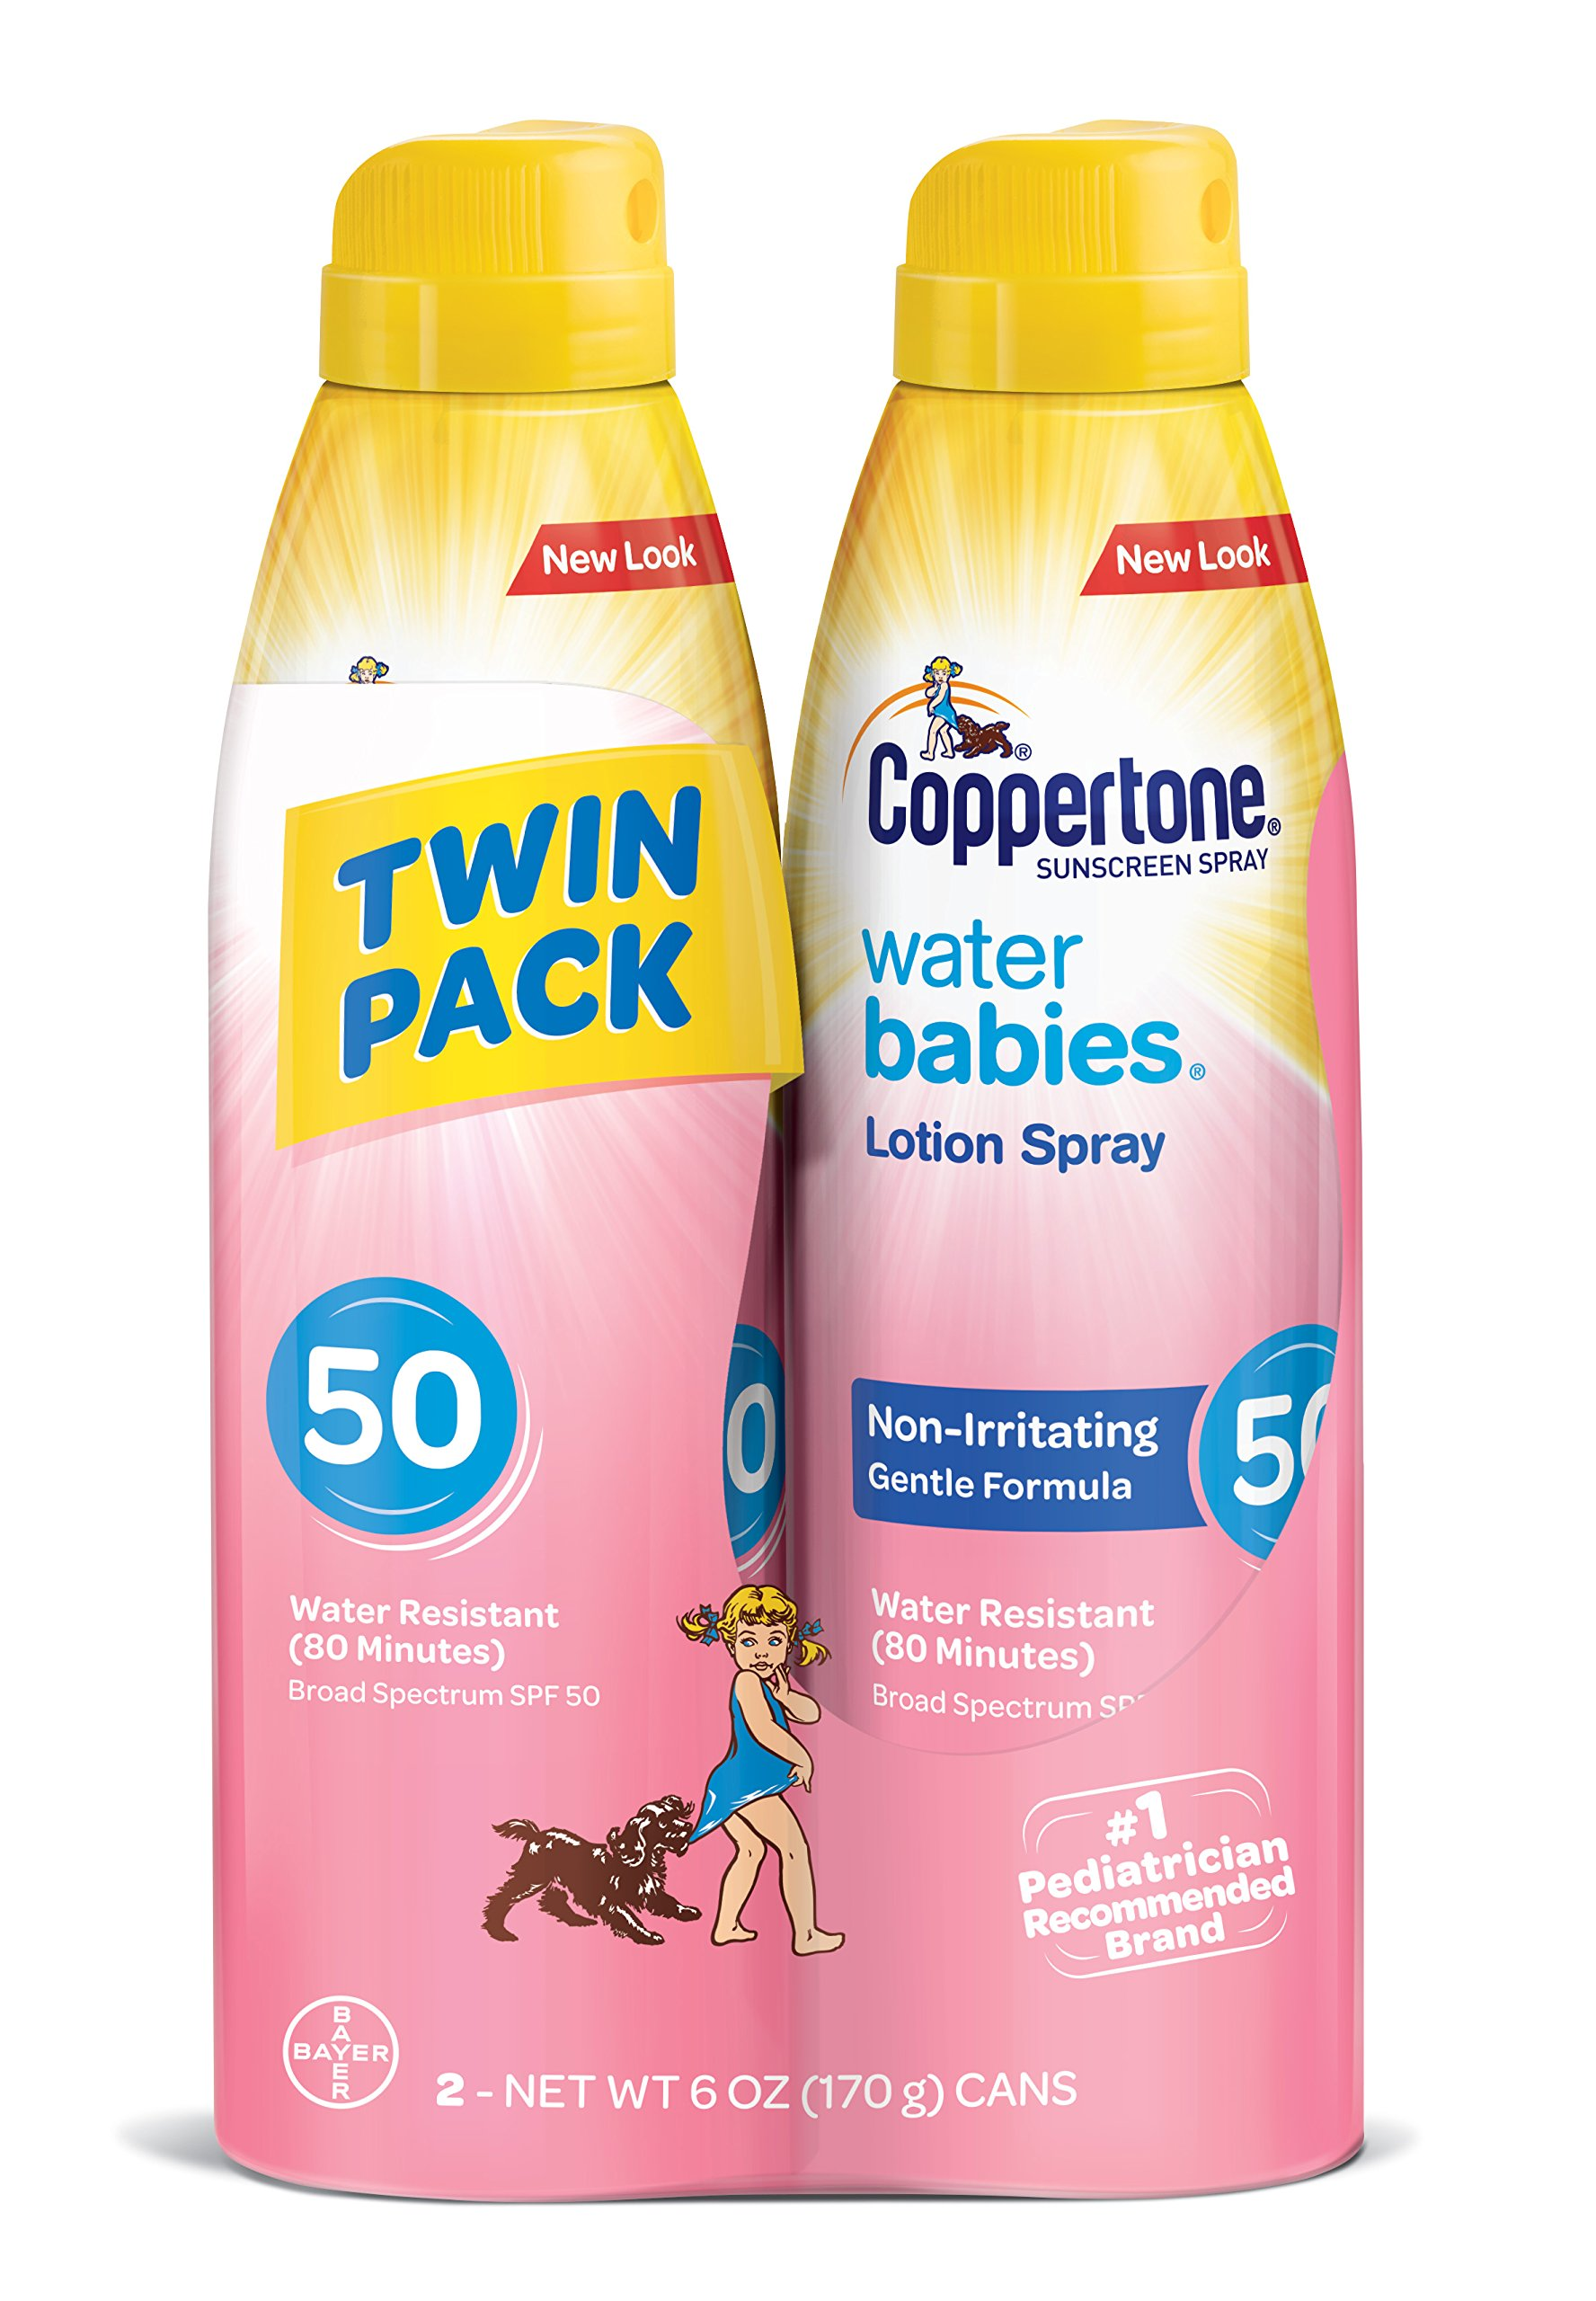 Coppertone WaterBabies Sunscreen Quick Cover Lotion Spray Broad Spectrum SPF 50 (6-Ounce Bottle, Twin Pack)